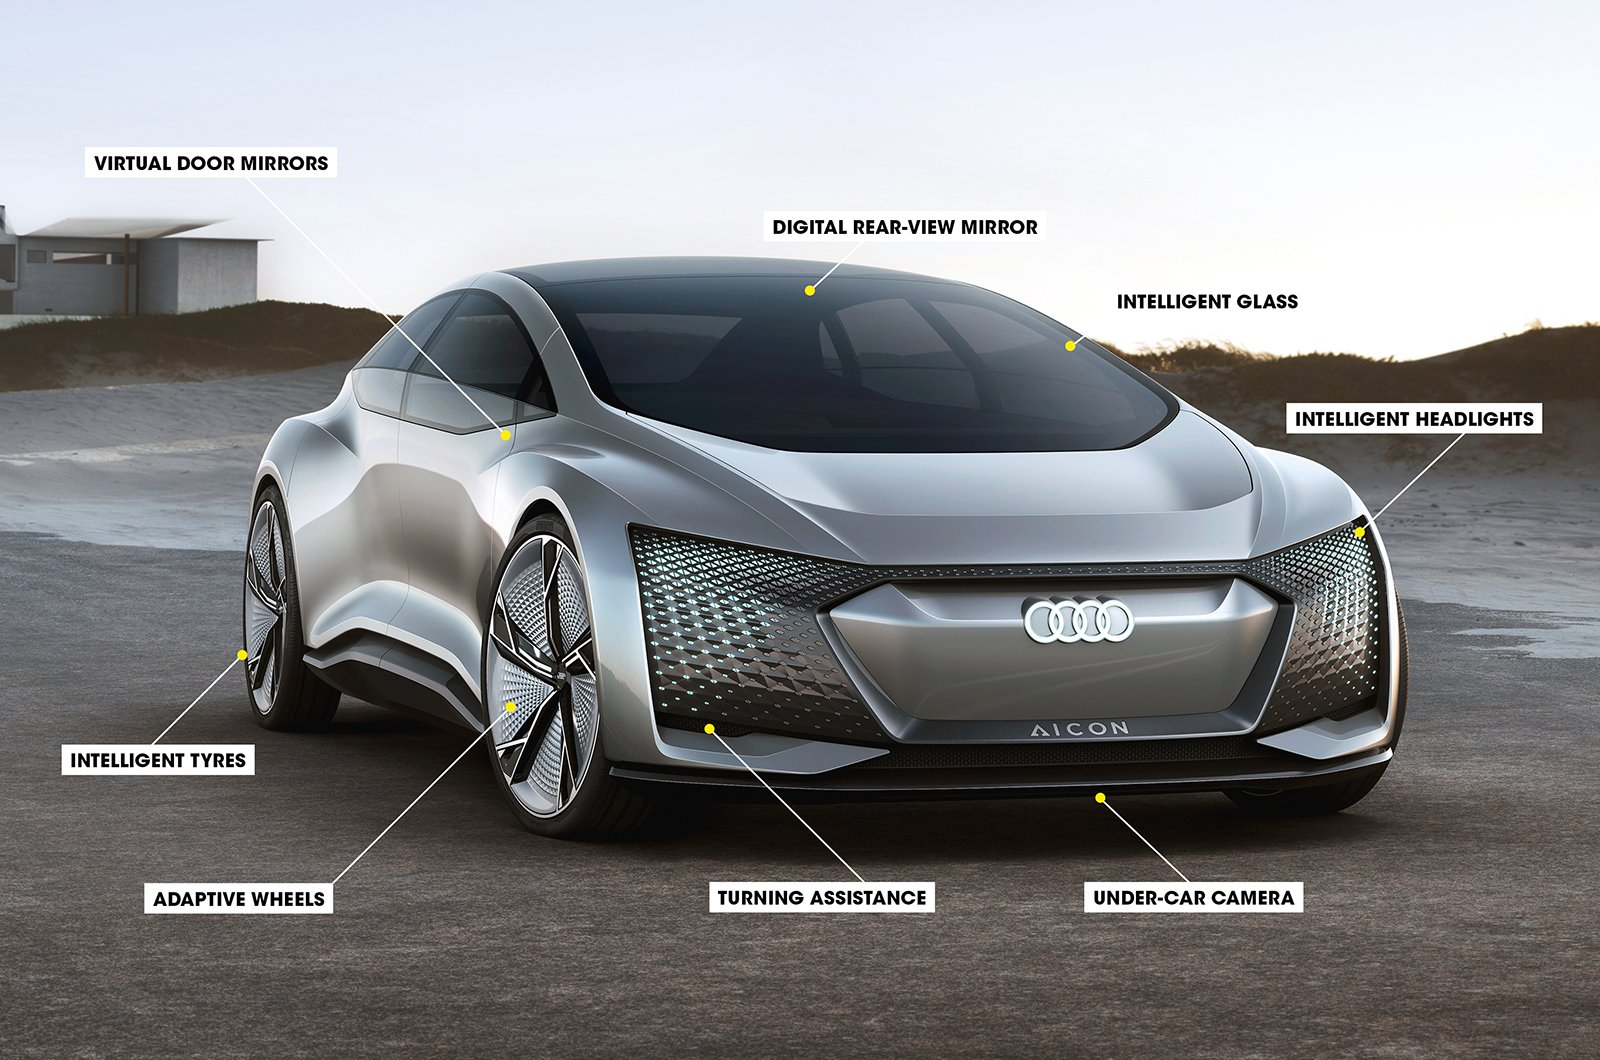 Audi concept car of the future